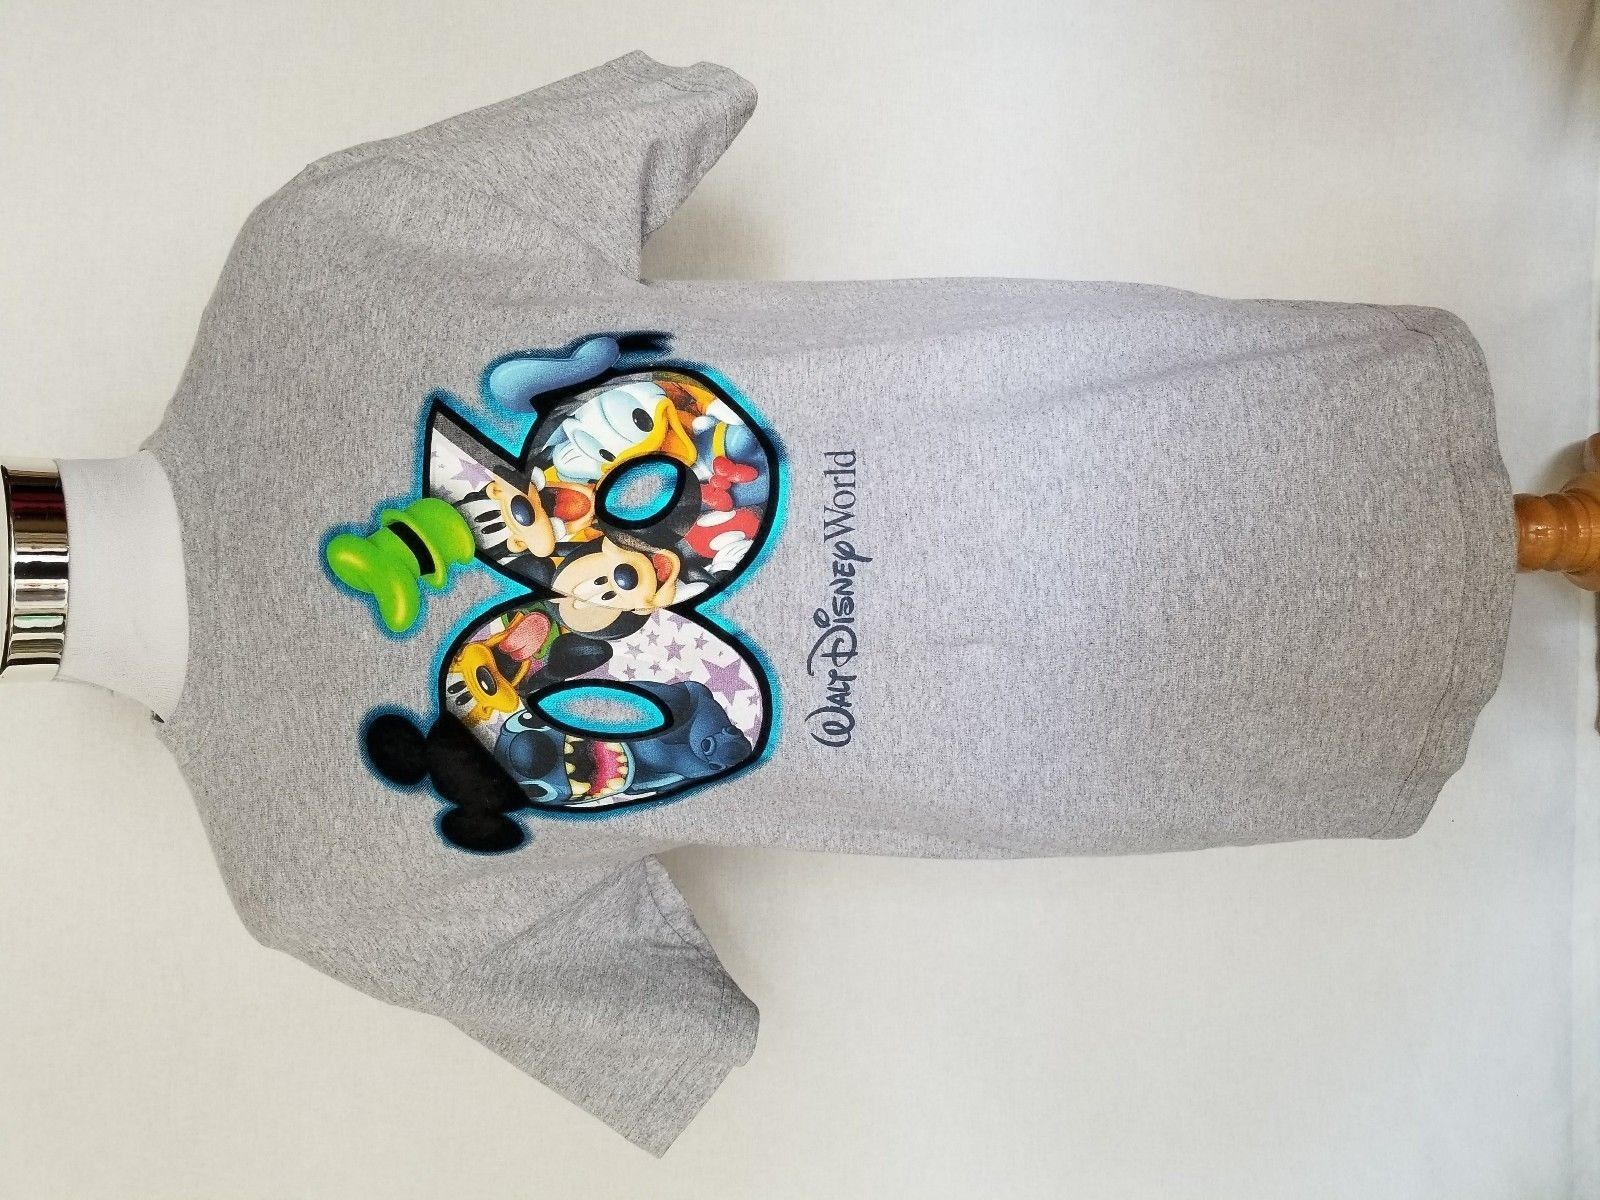 2006 World Disney World Mickey Mouse Donald Duck Goofy Pluto Gray T-Shirt Sz M